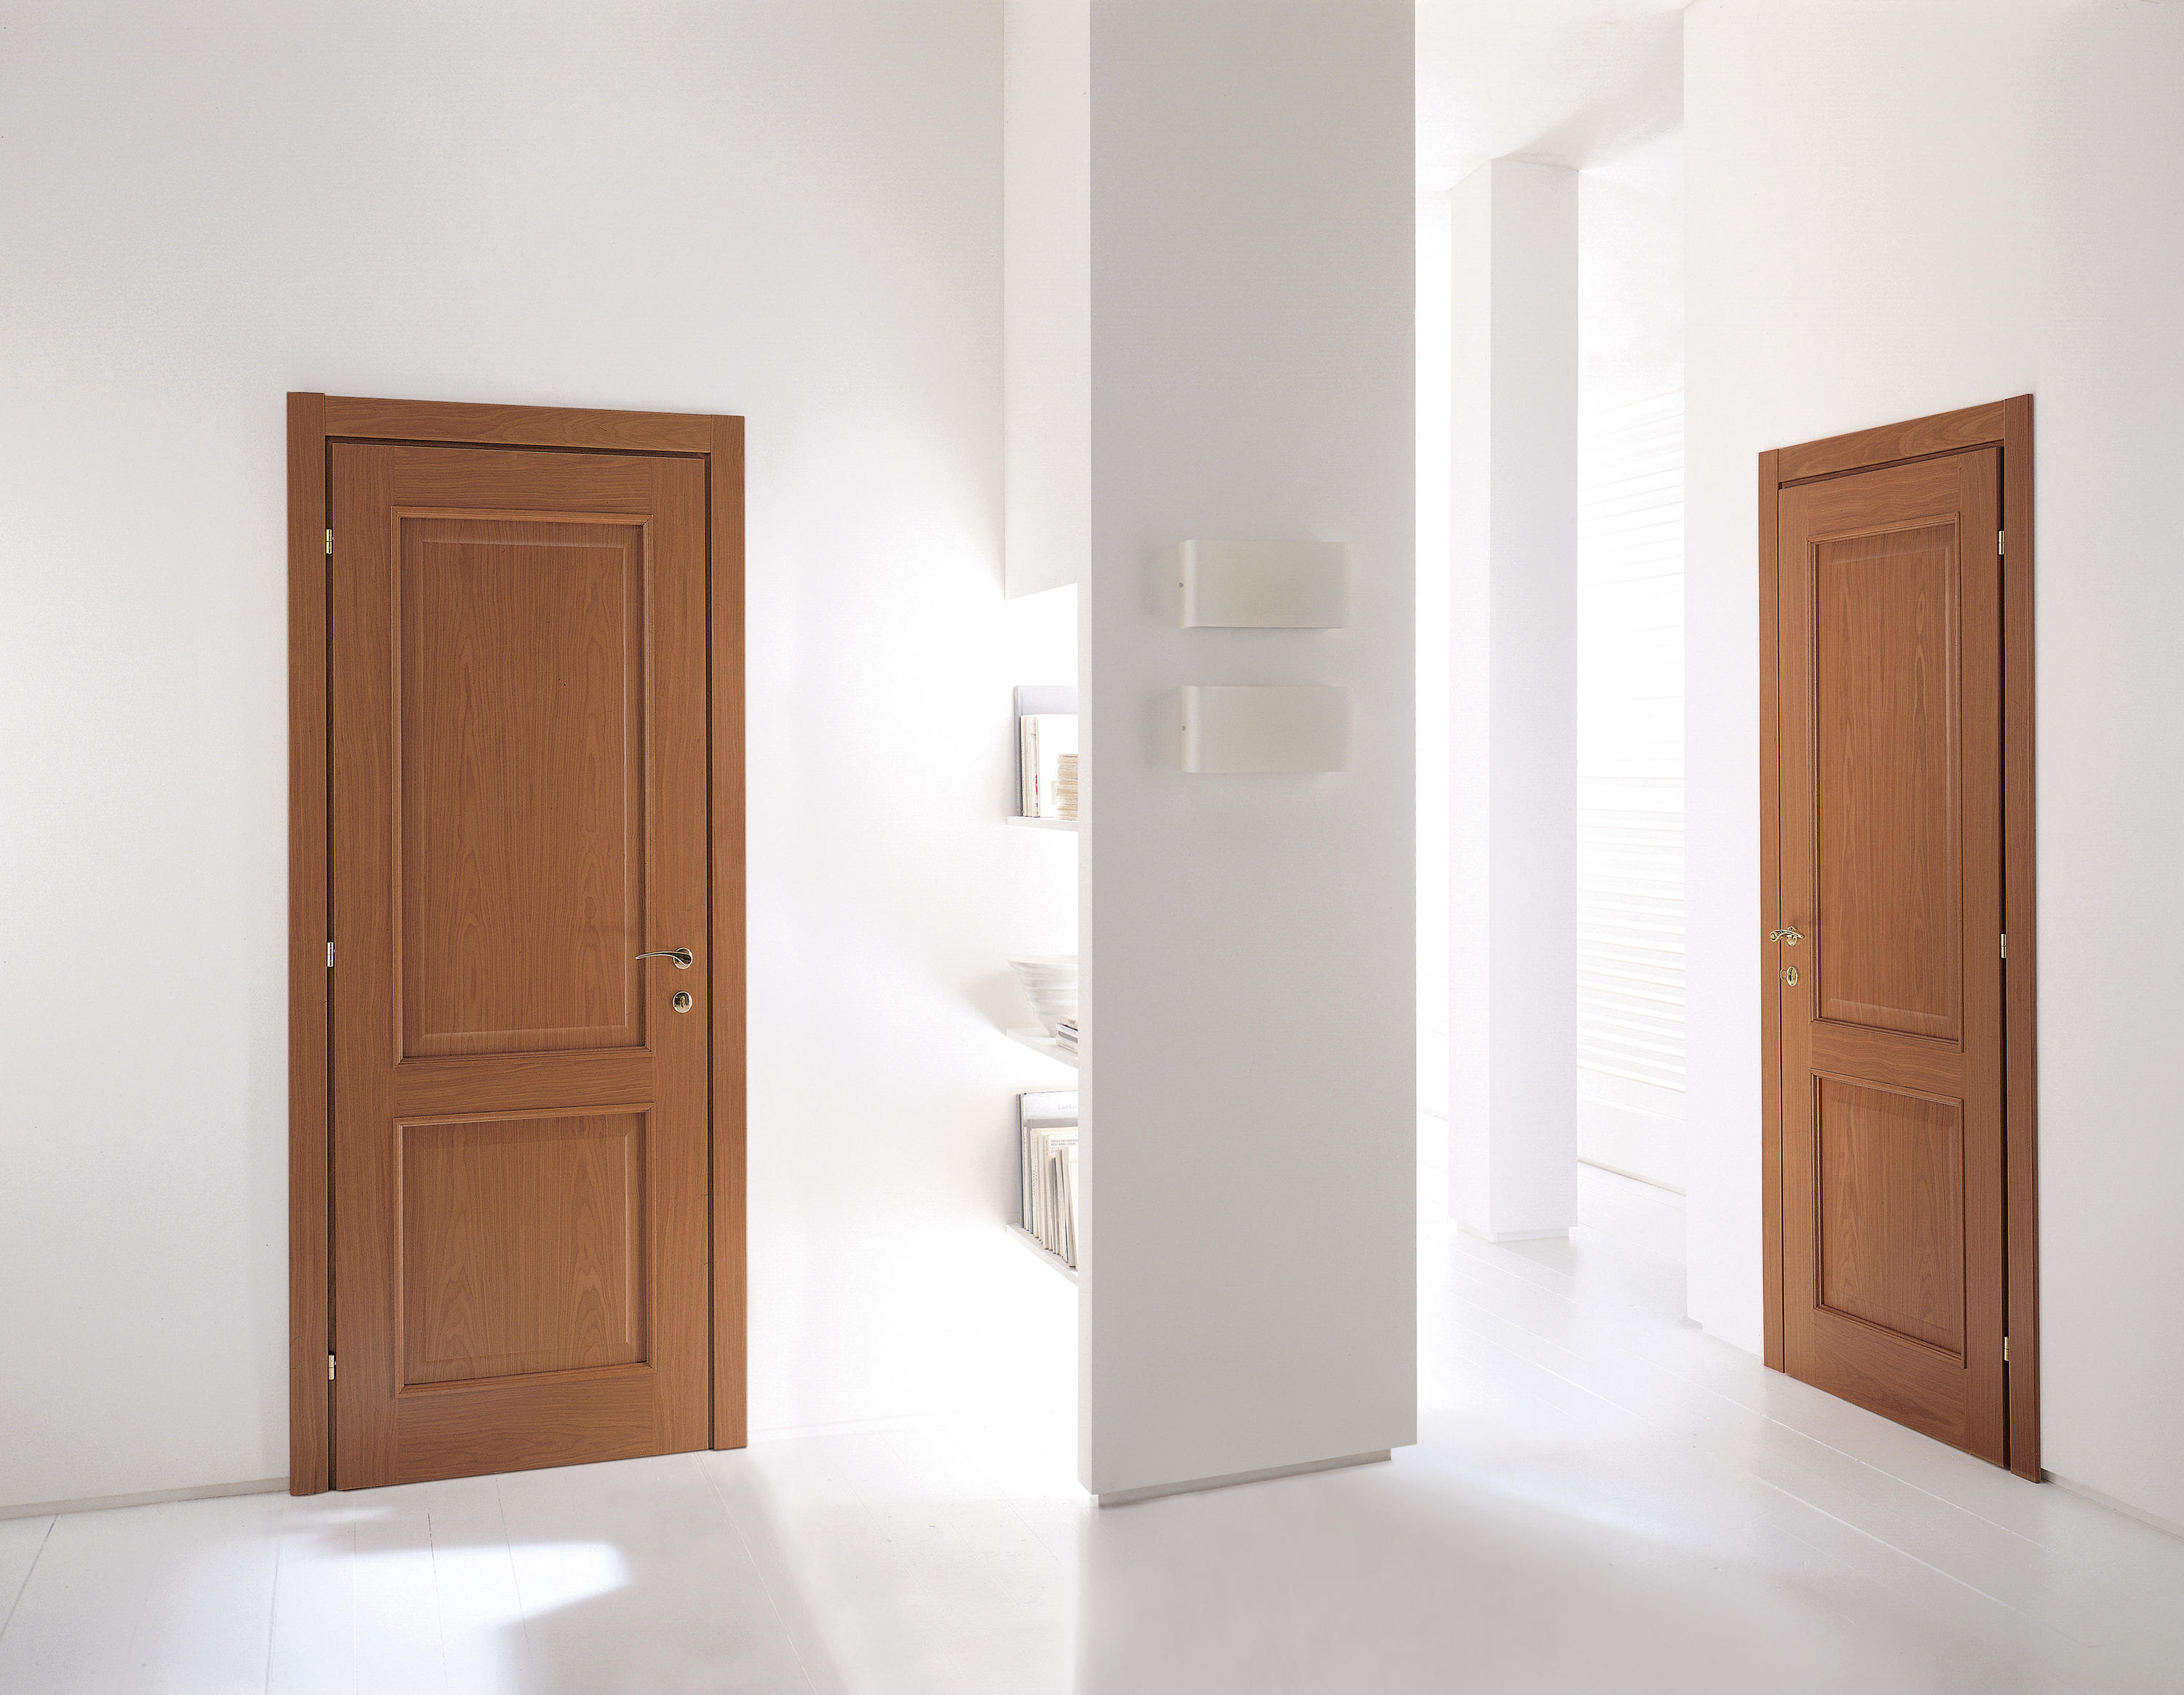 CLASSICA D4 - Internal doors from TRE-P & TRE-Più | Architonic